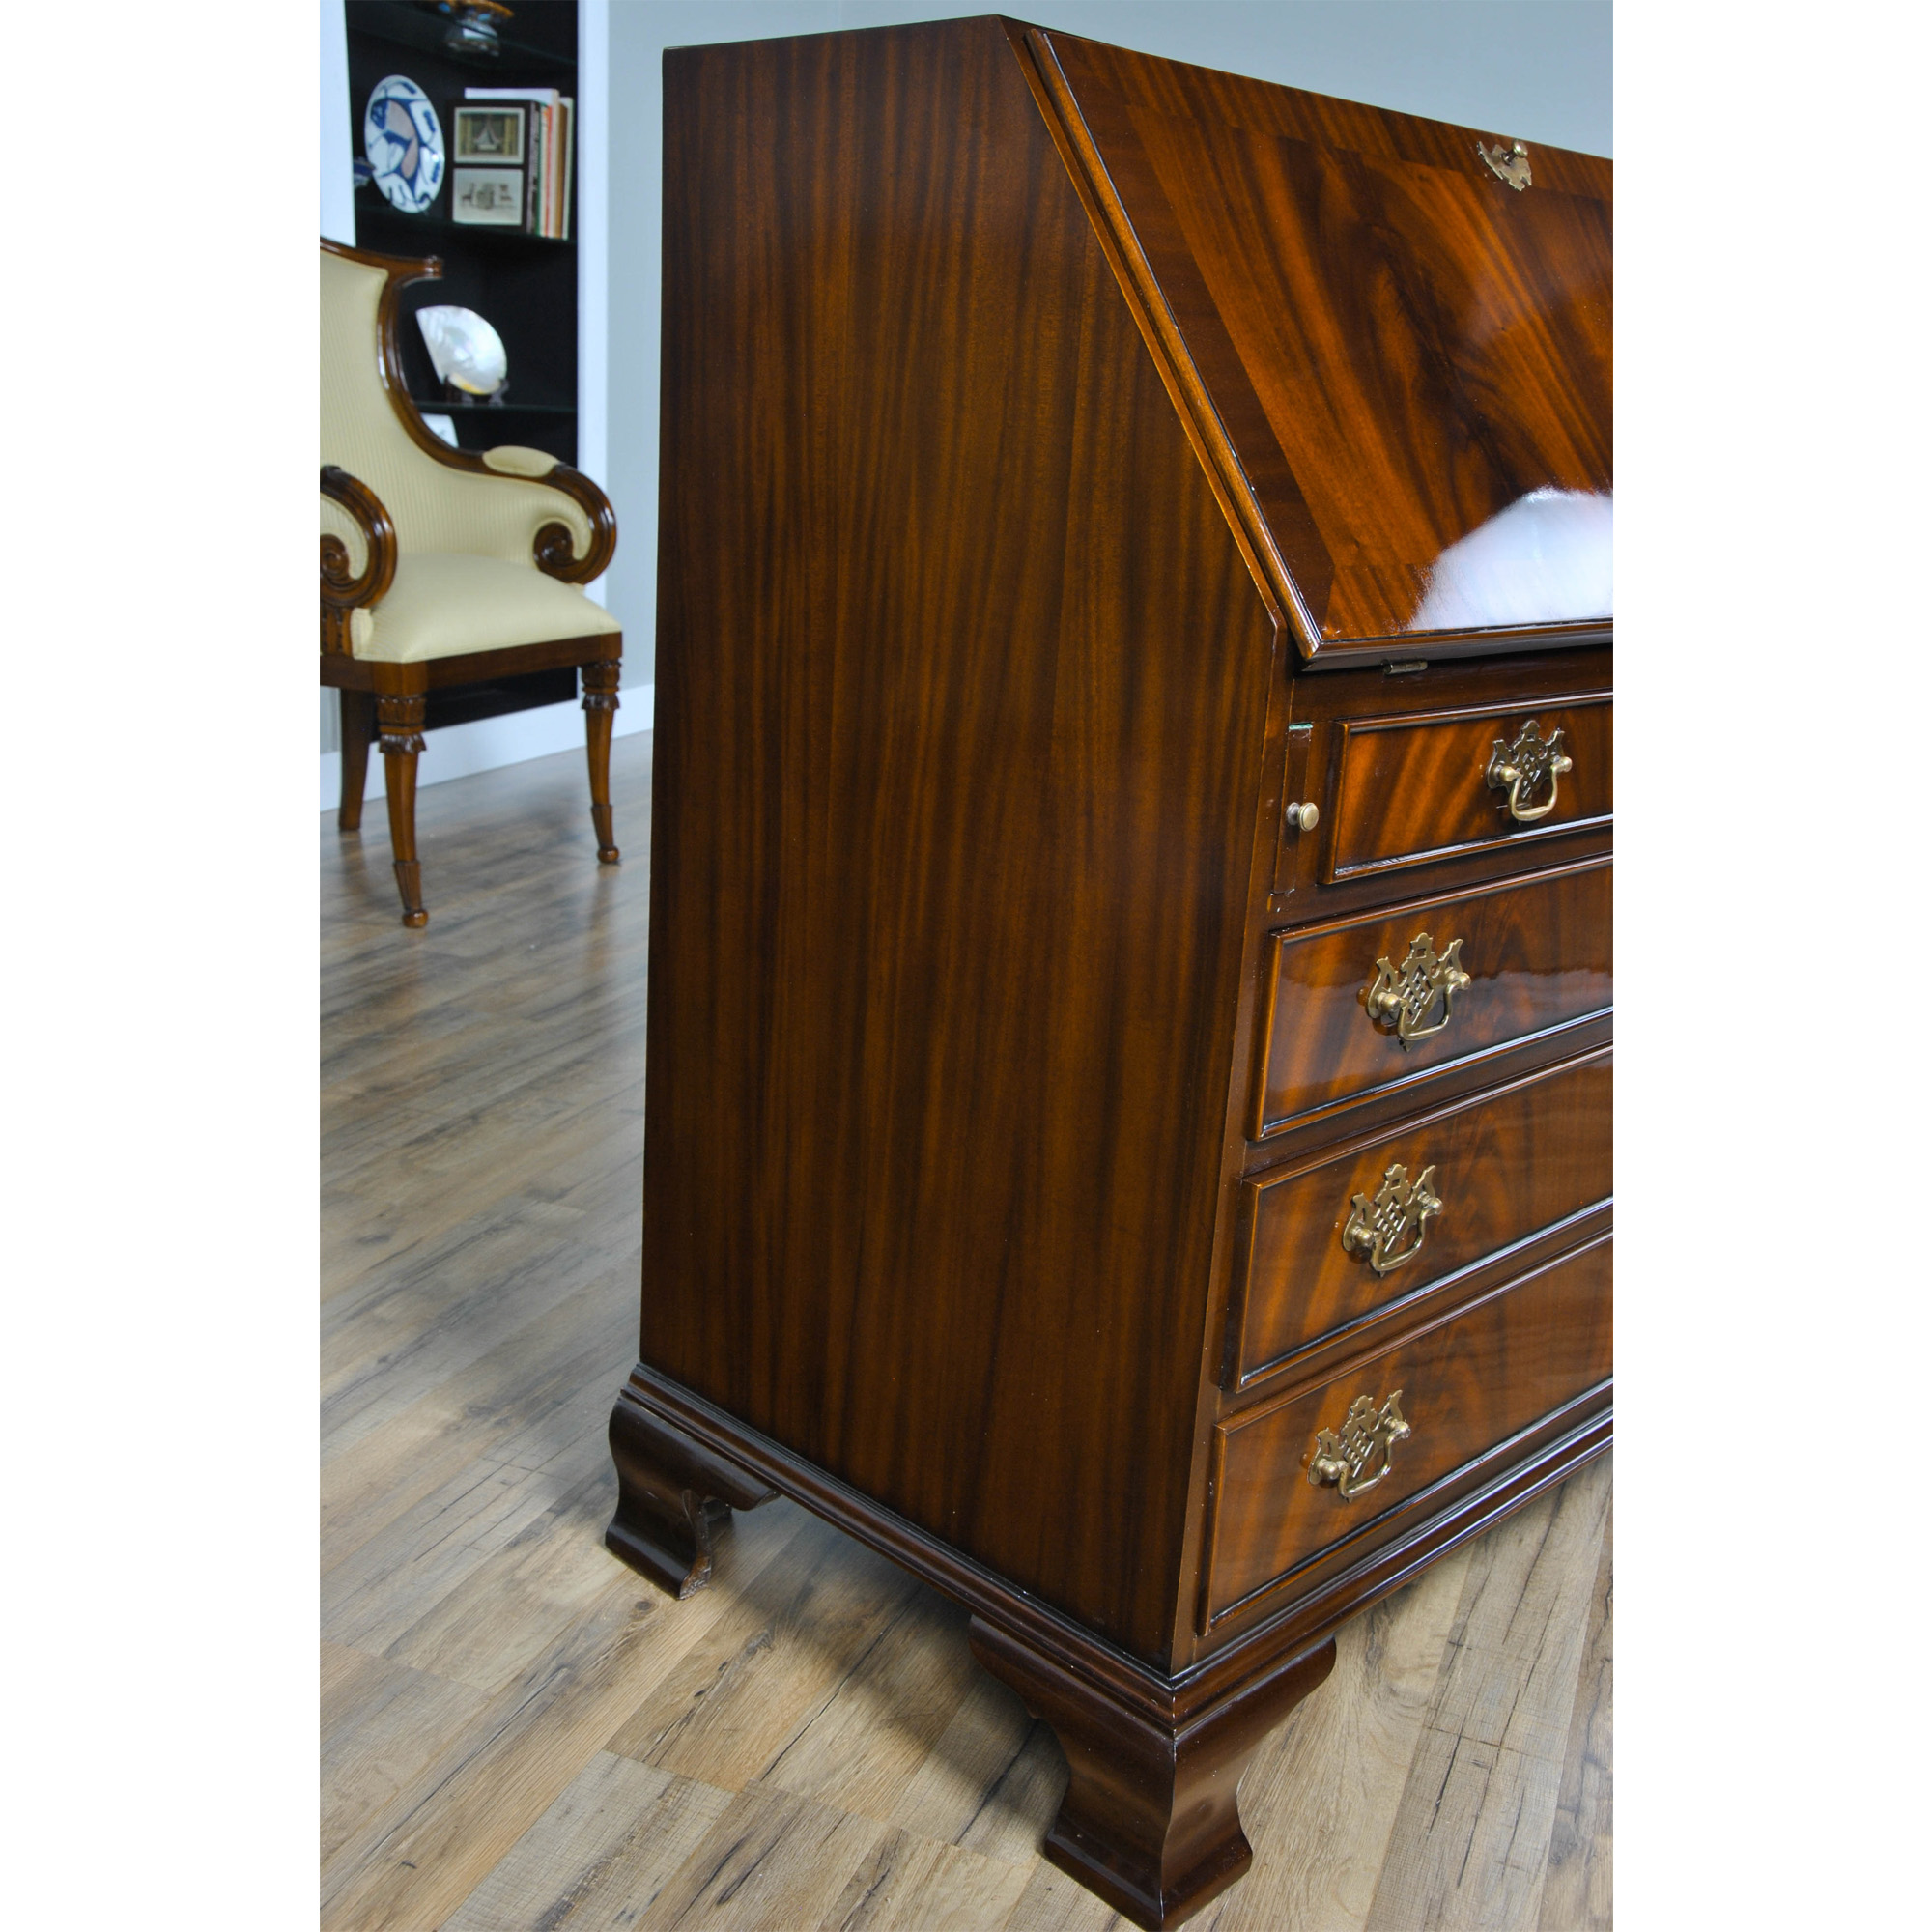 master case bookcases with shot furniture open france for id century architectural bookshelf f at pieces mid iron legs oak storage cerused sale secretary